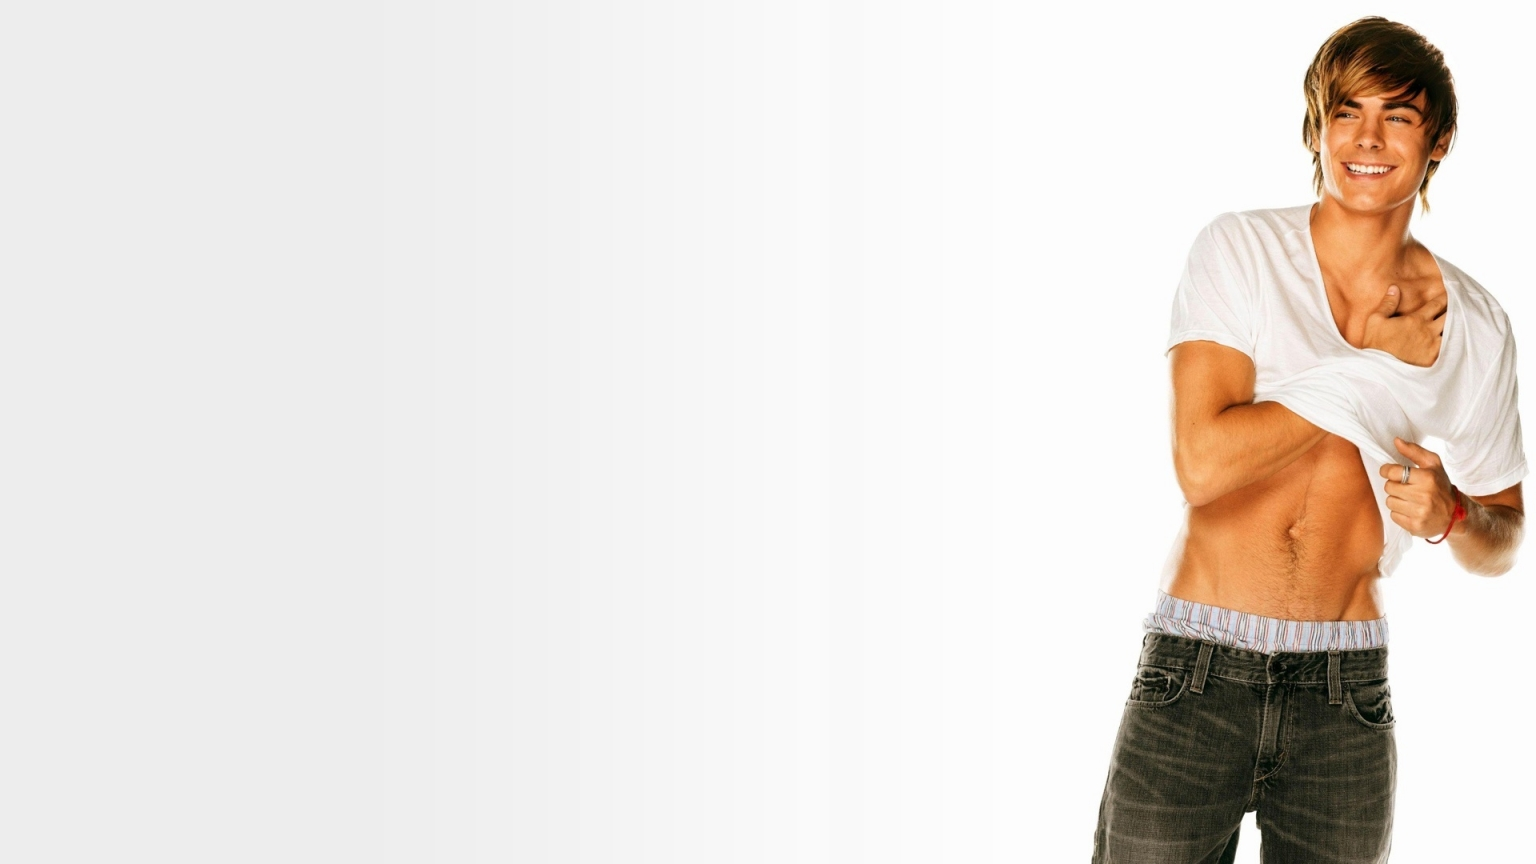 Zac Efron Sexy for 1536 x 864 HDTV resolution